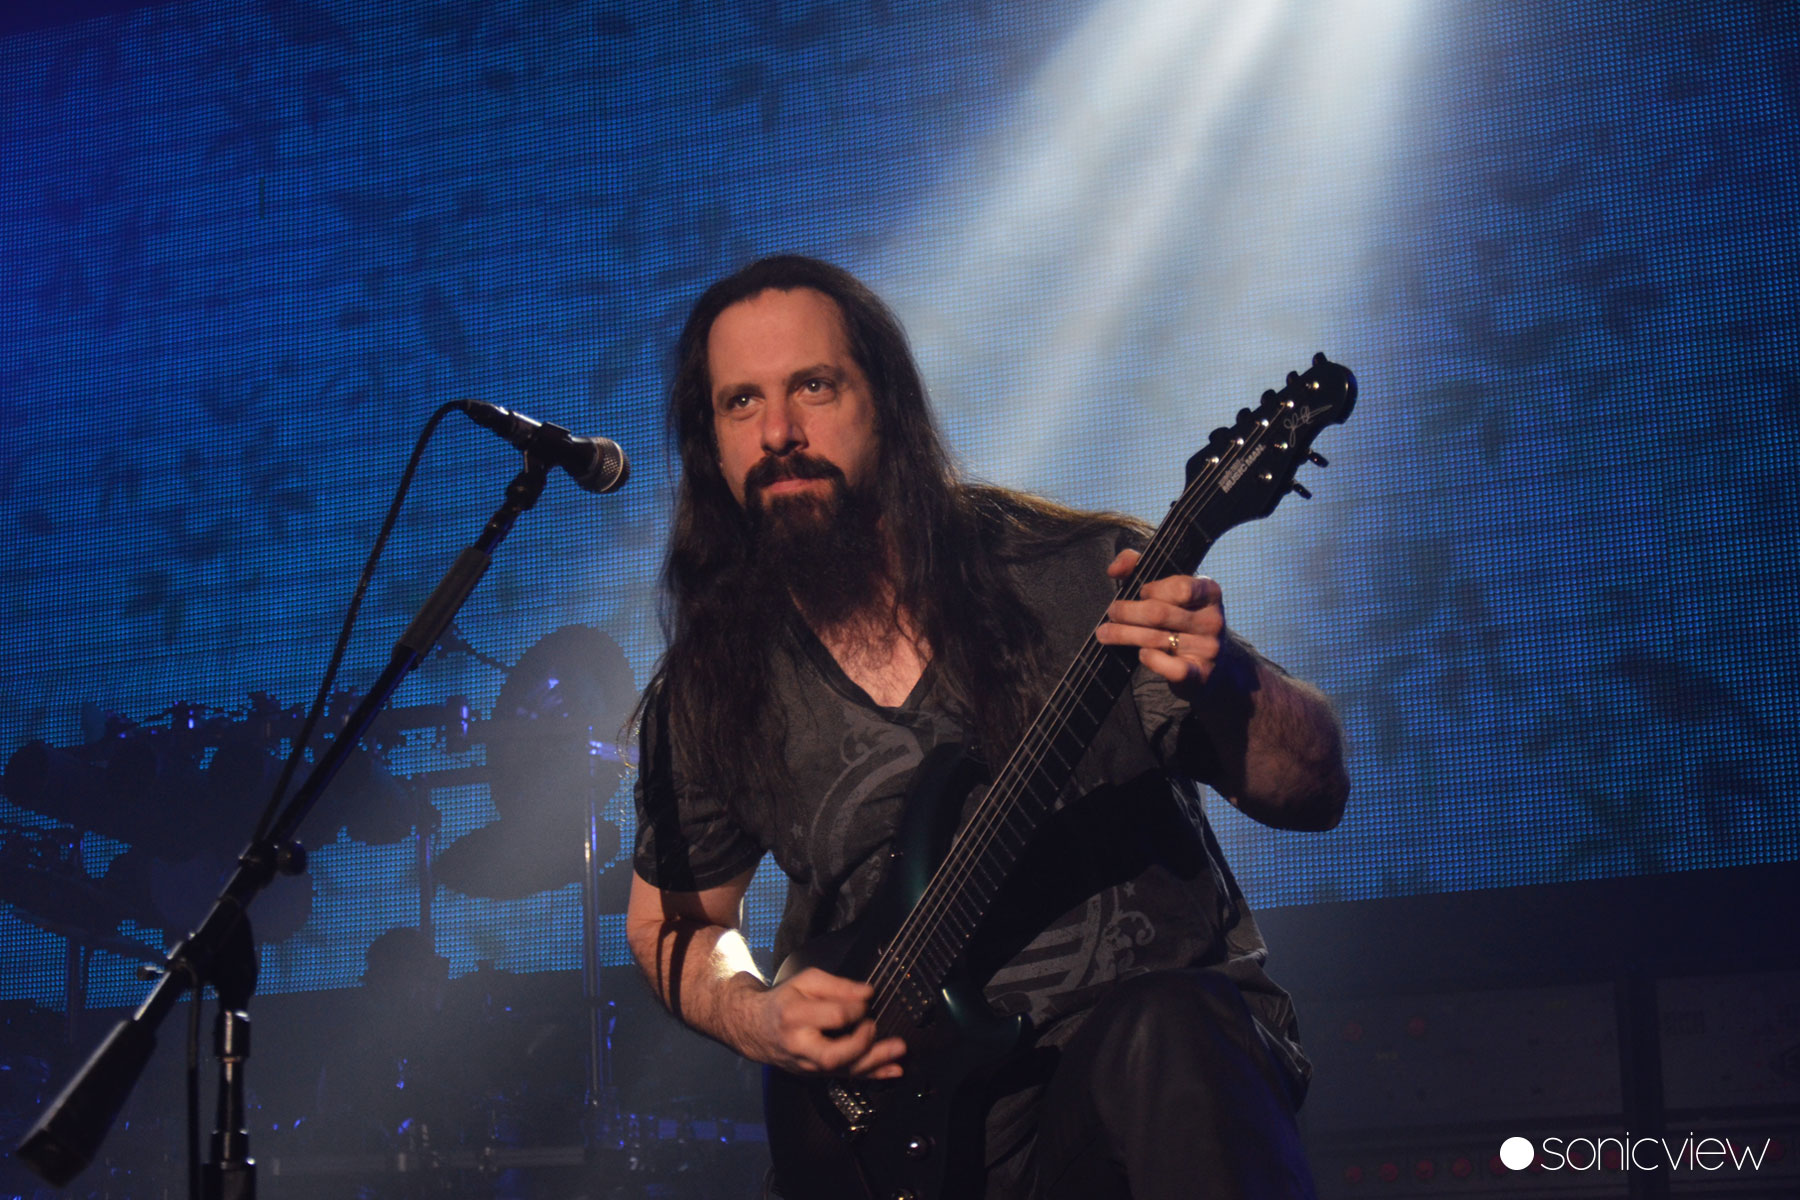 Dream Theater: Live at Falconer 2014, Copenhagen, Denmark